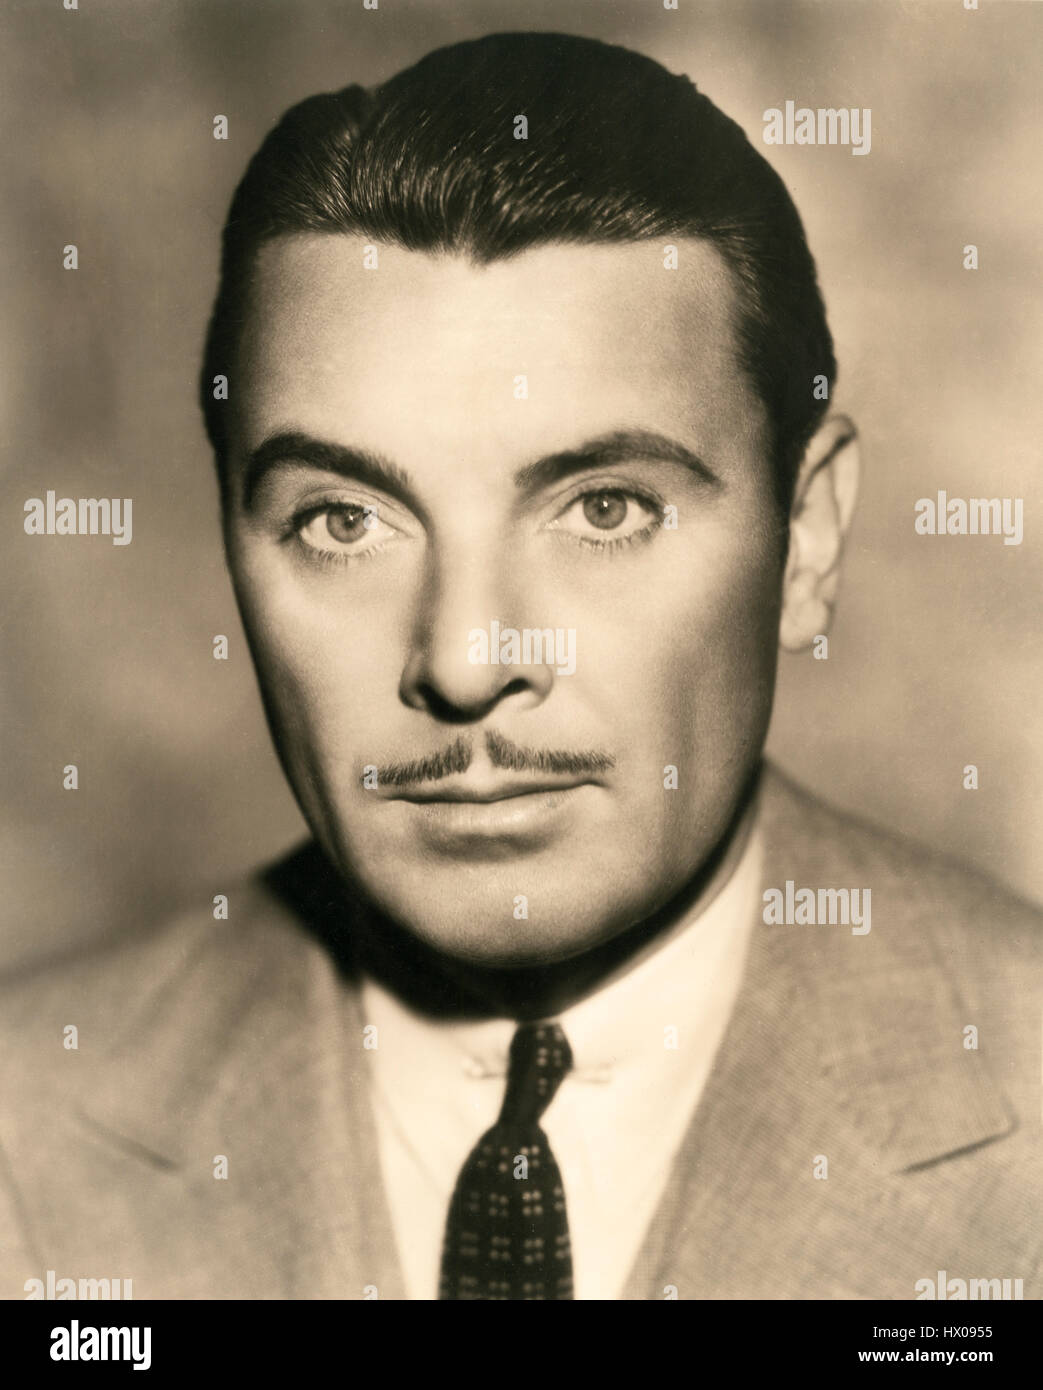 George Brent, Head and Shoulders Publicity Portrait, 1940 - Stock Image